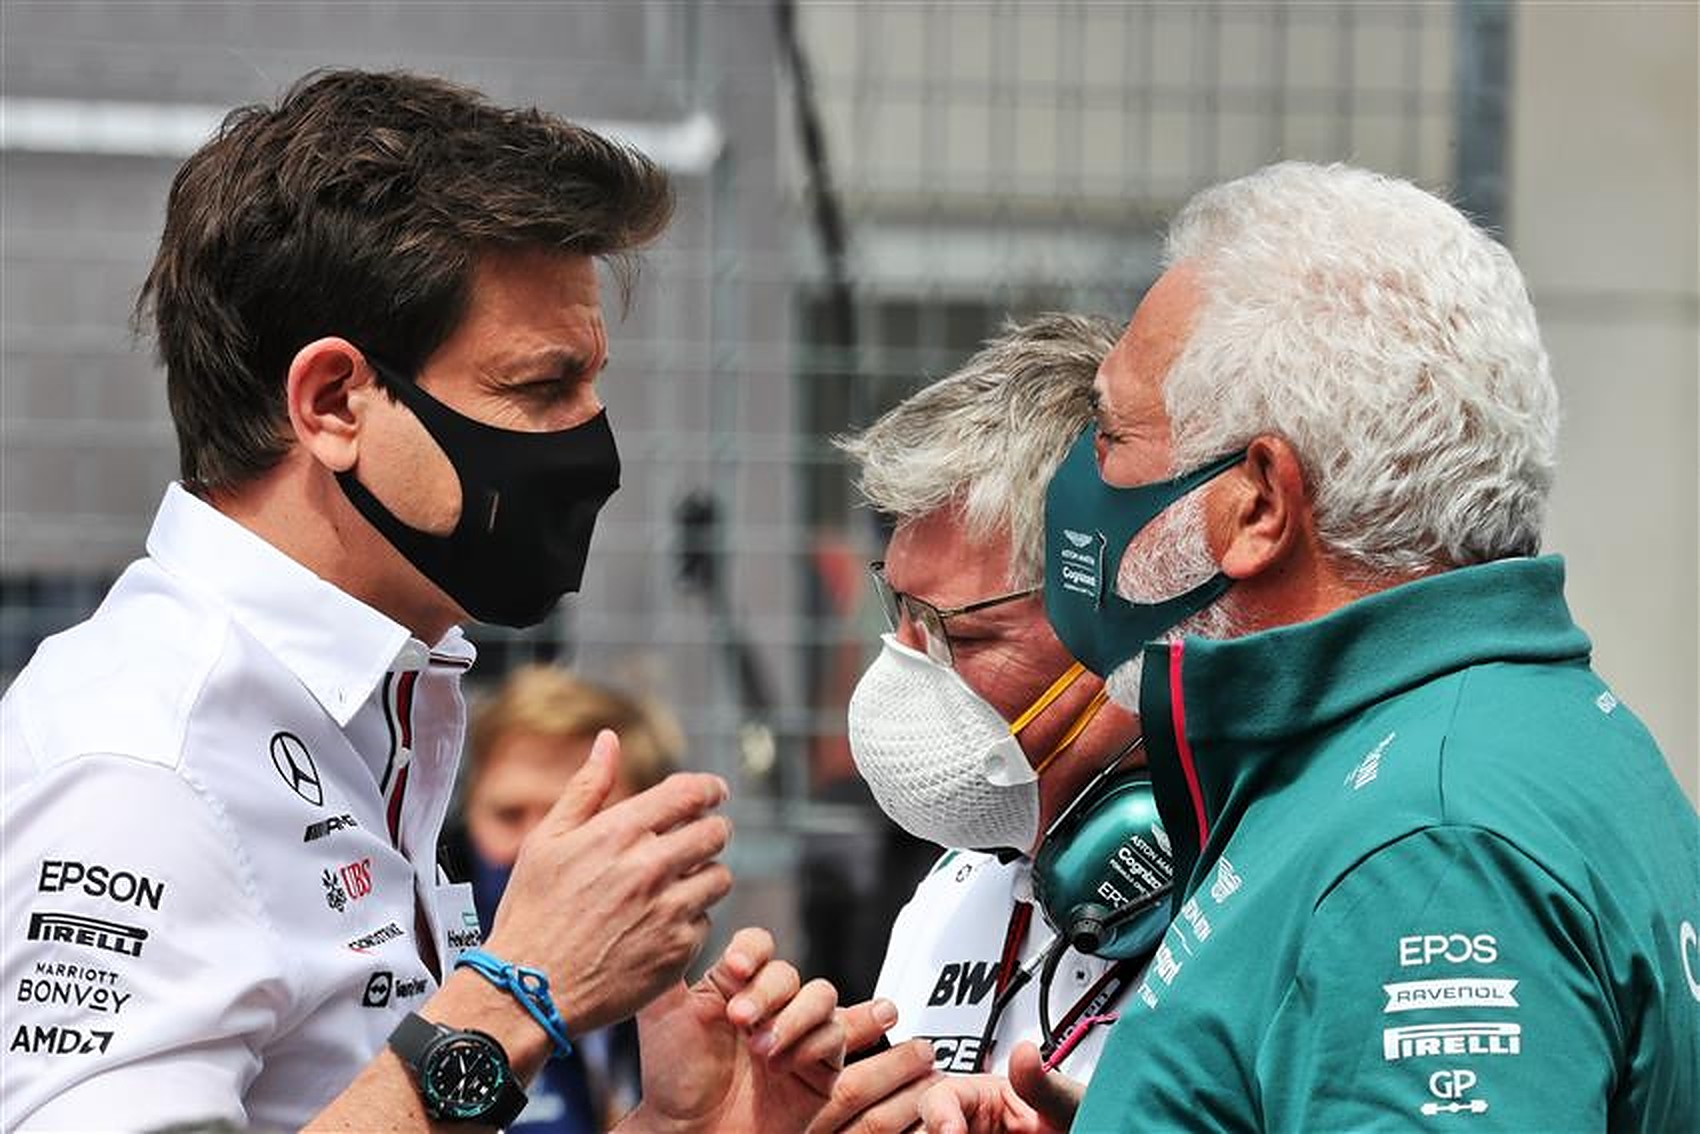 Toto Wolff and Lawrence Stroll insider trading investigation - Formula1news.co.uk.v1